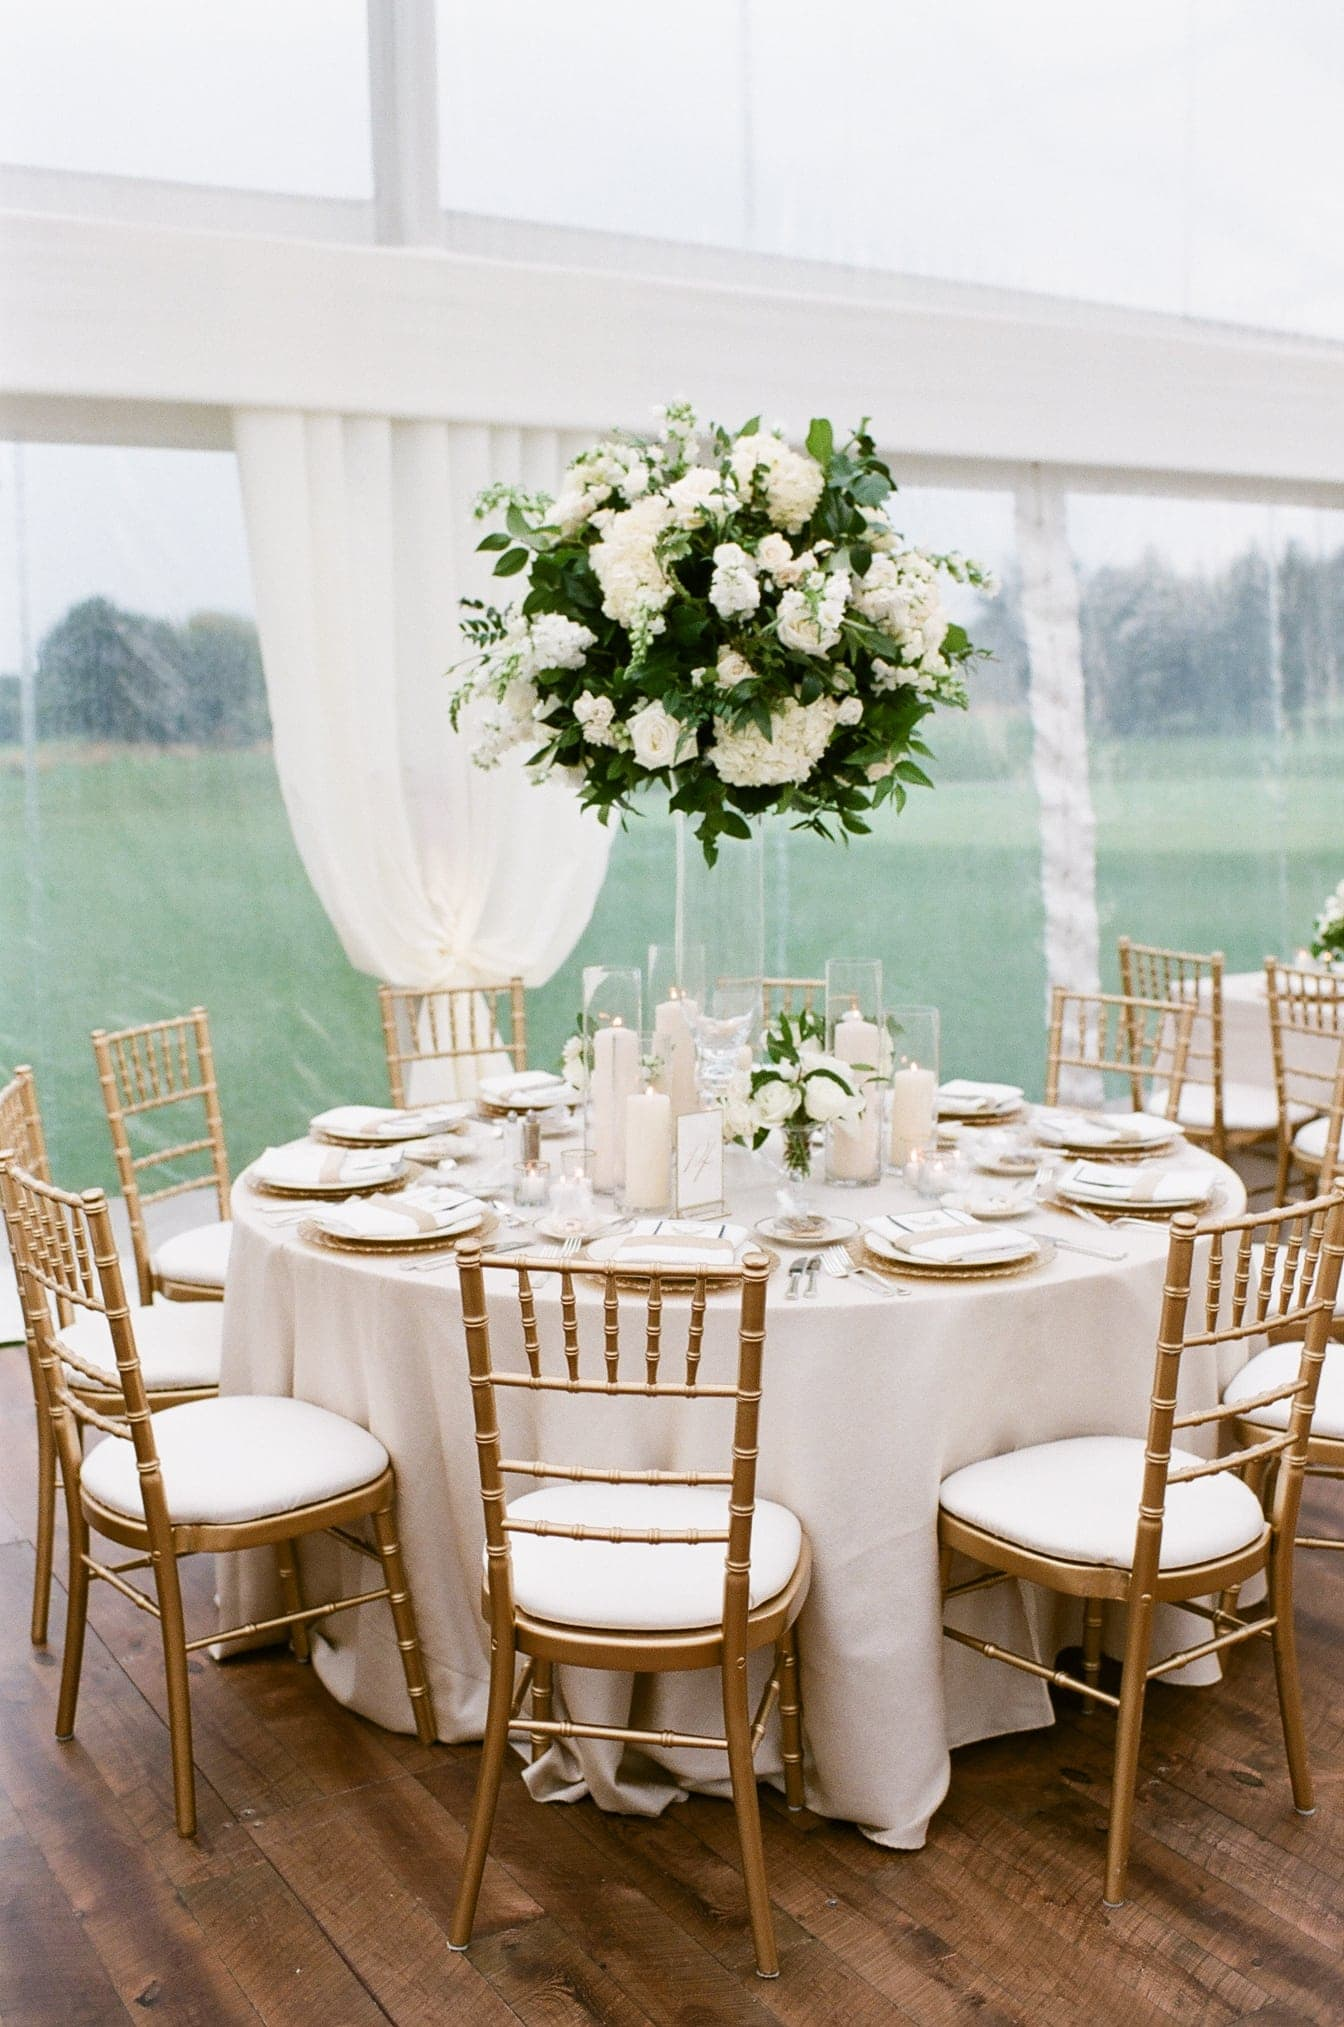 Coordinated table setup and floral design by The Creative Planners